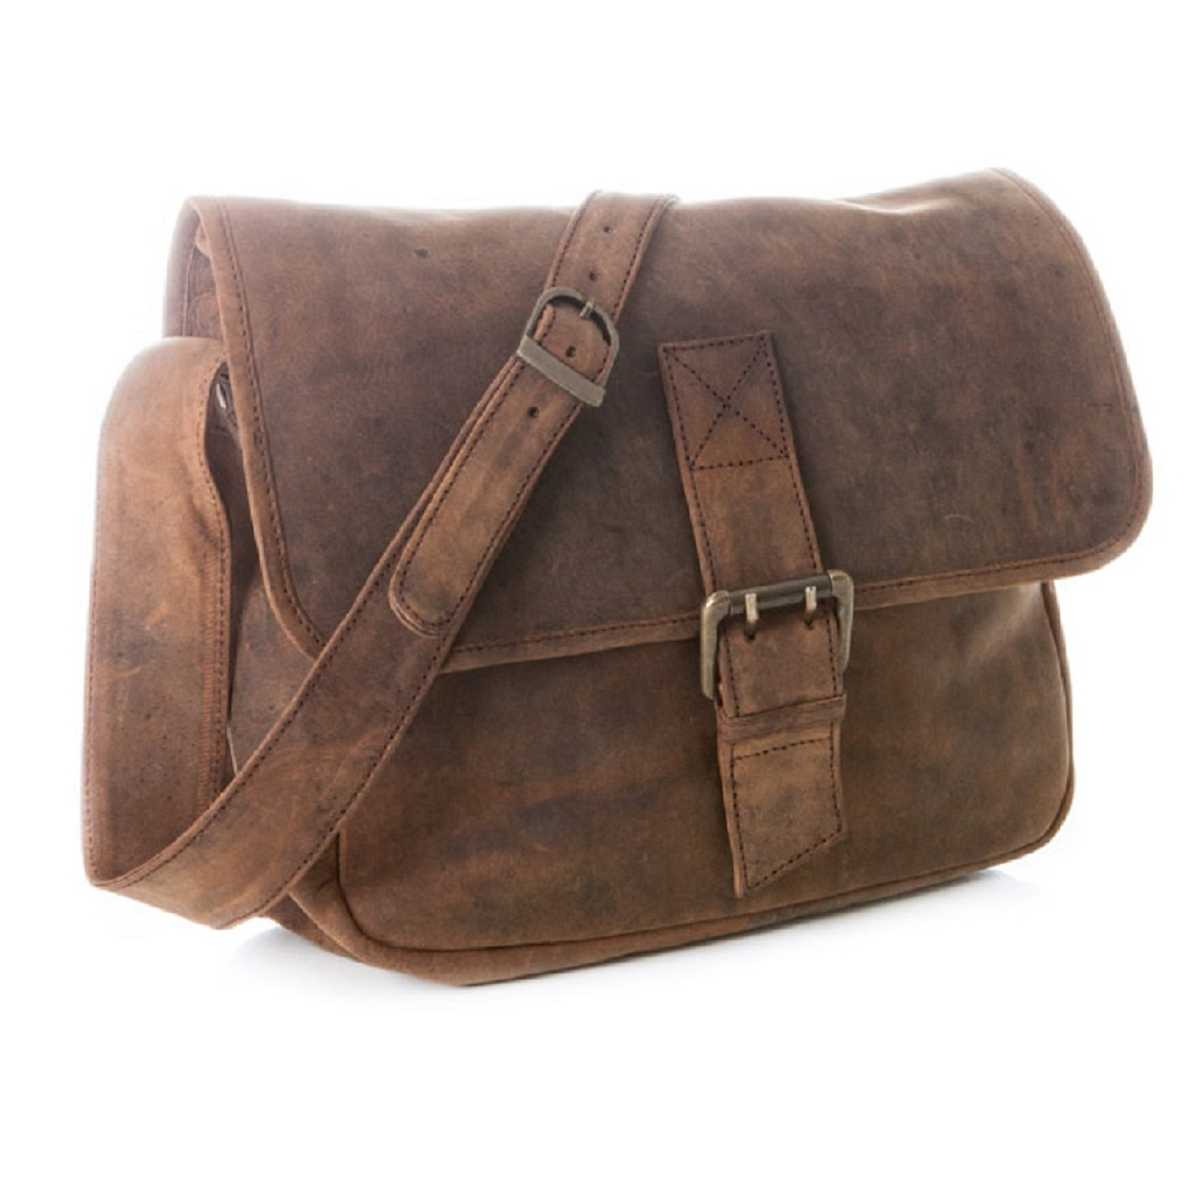 Indian Mood 8130 Leather Bag Tan Brown leather bag